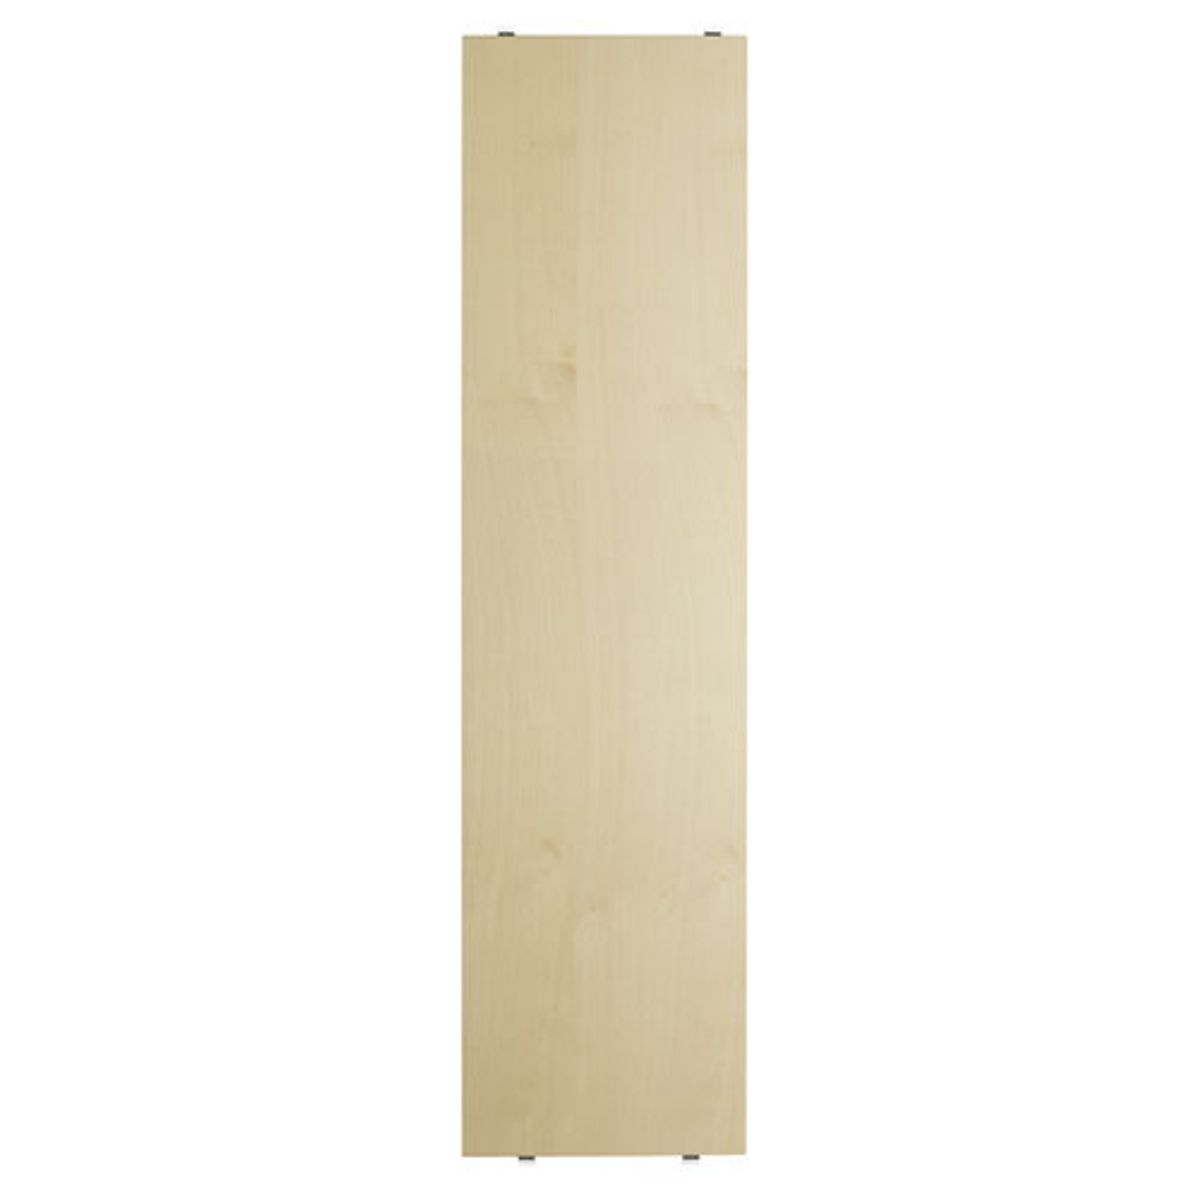 Etag re et table rabattable en bois et m tal string for Table rabattable bois